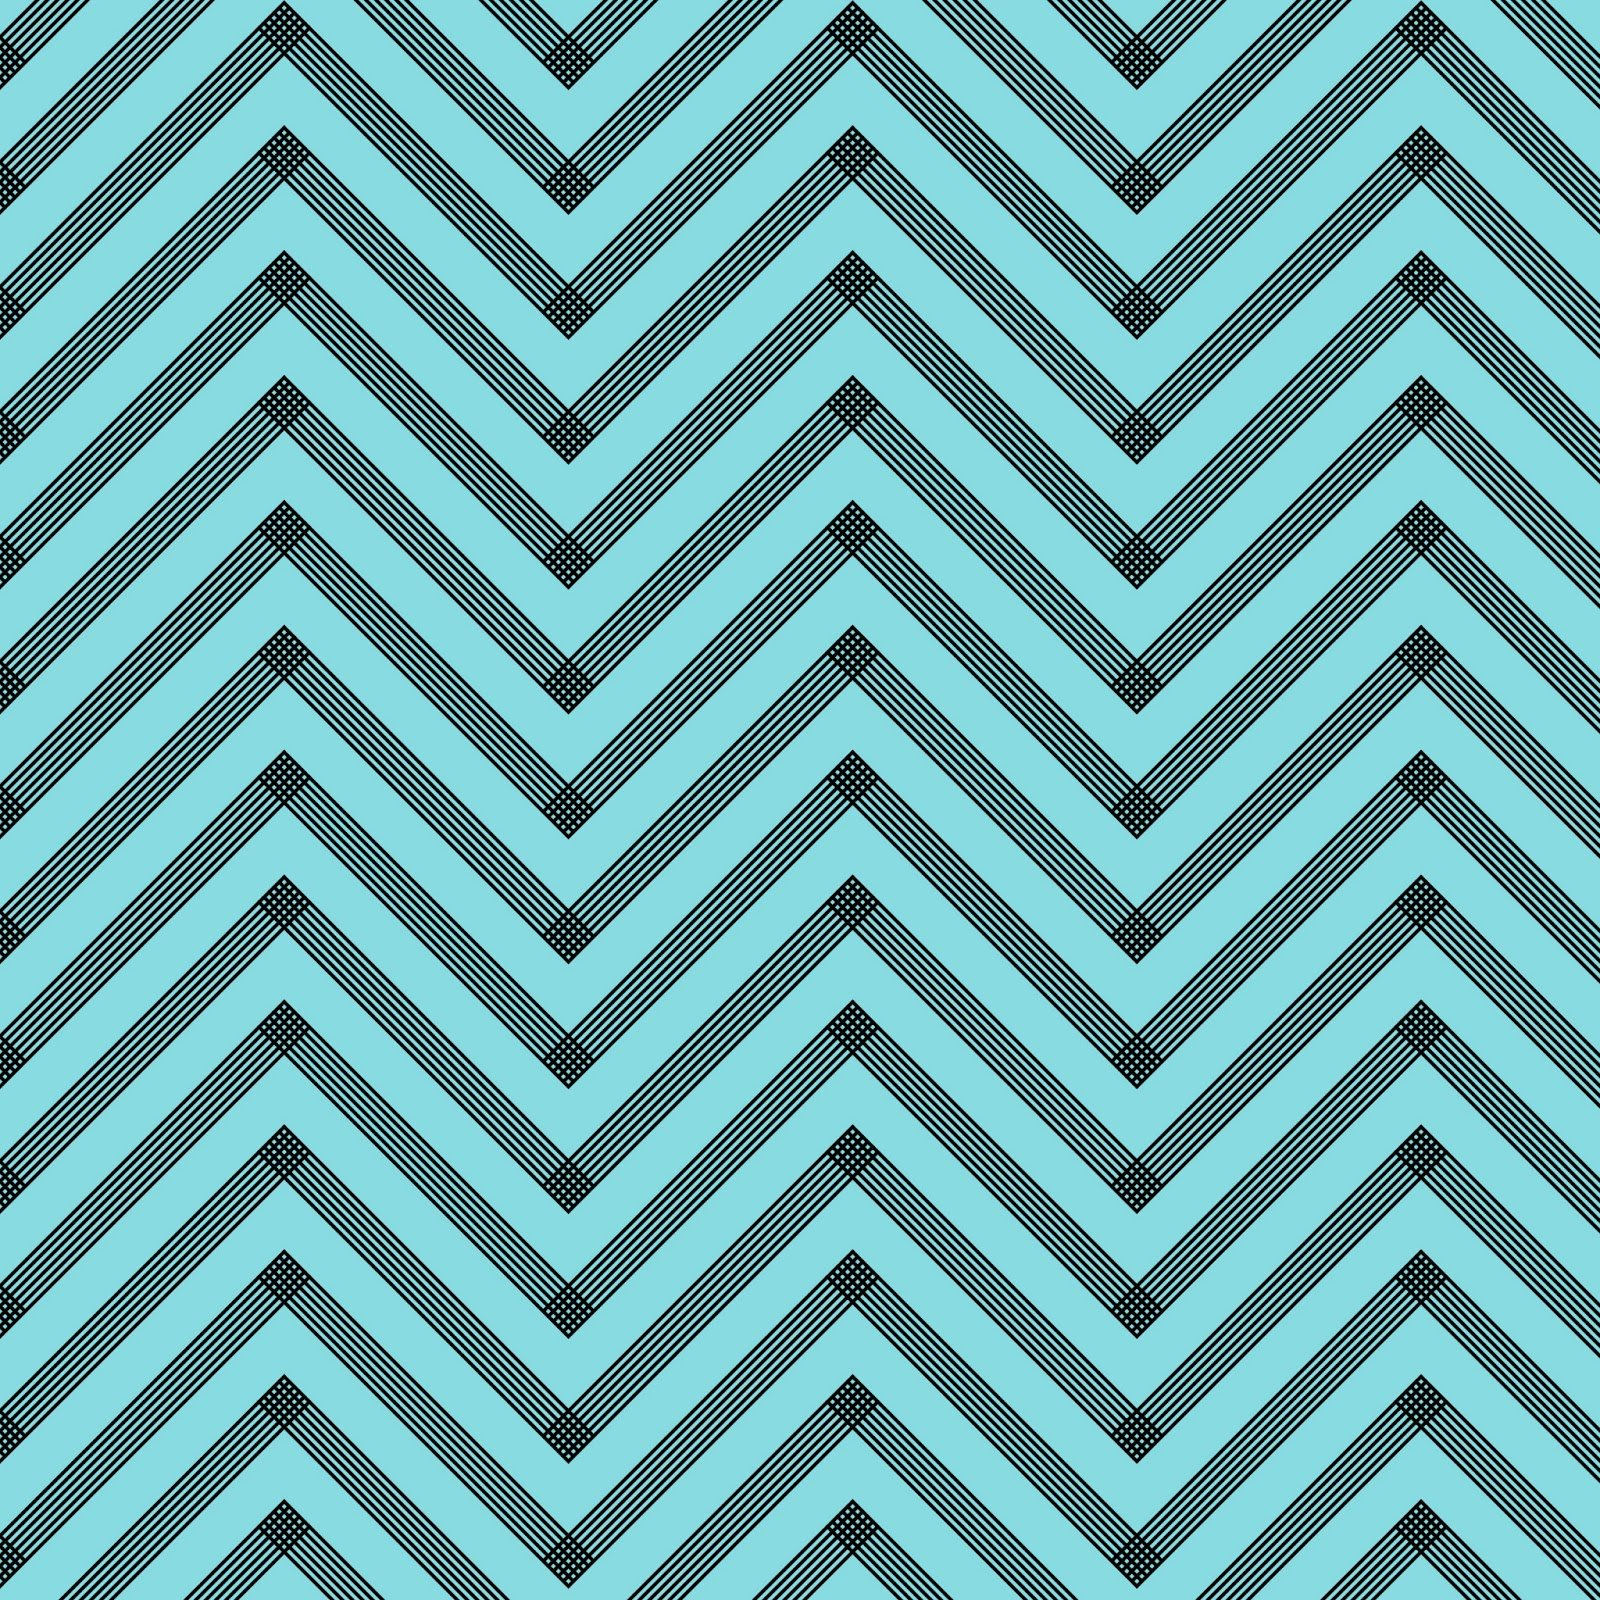 Coral And Mint Chevron Desktop Background Images Pictures Becuo 1600x1600